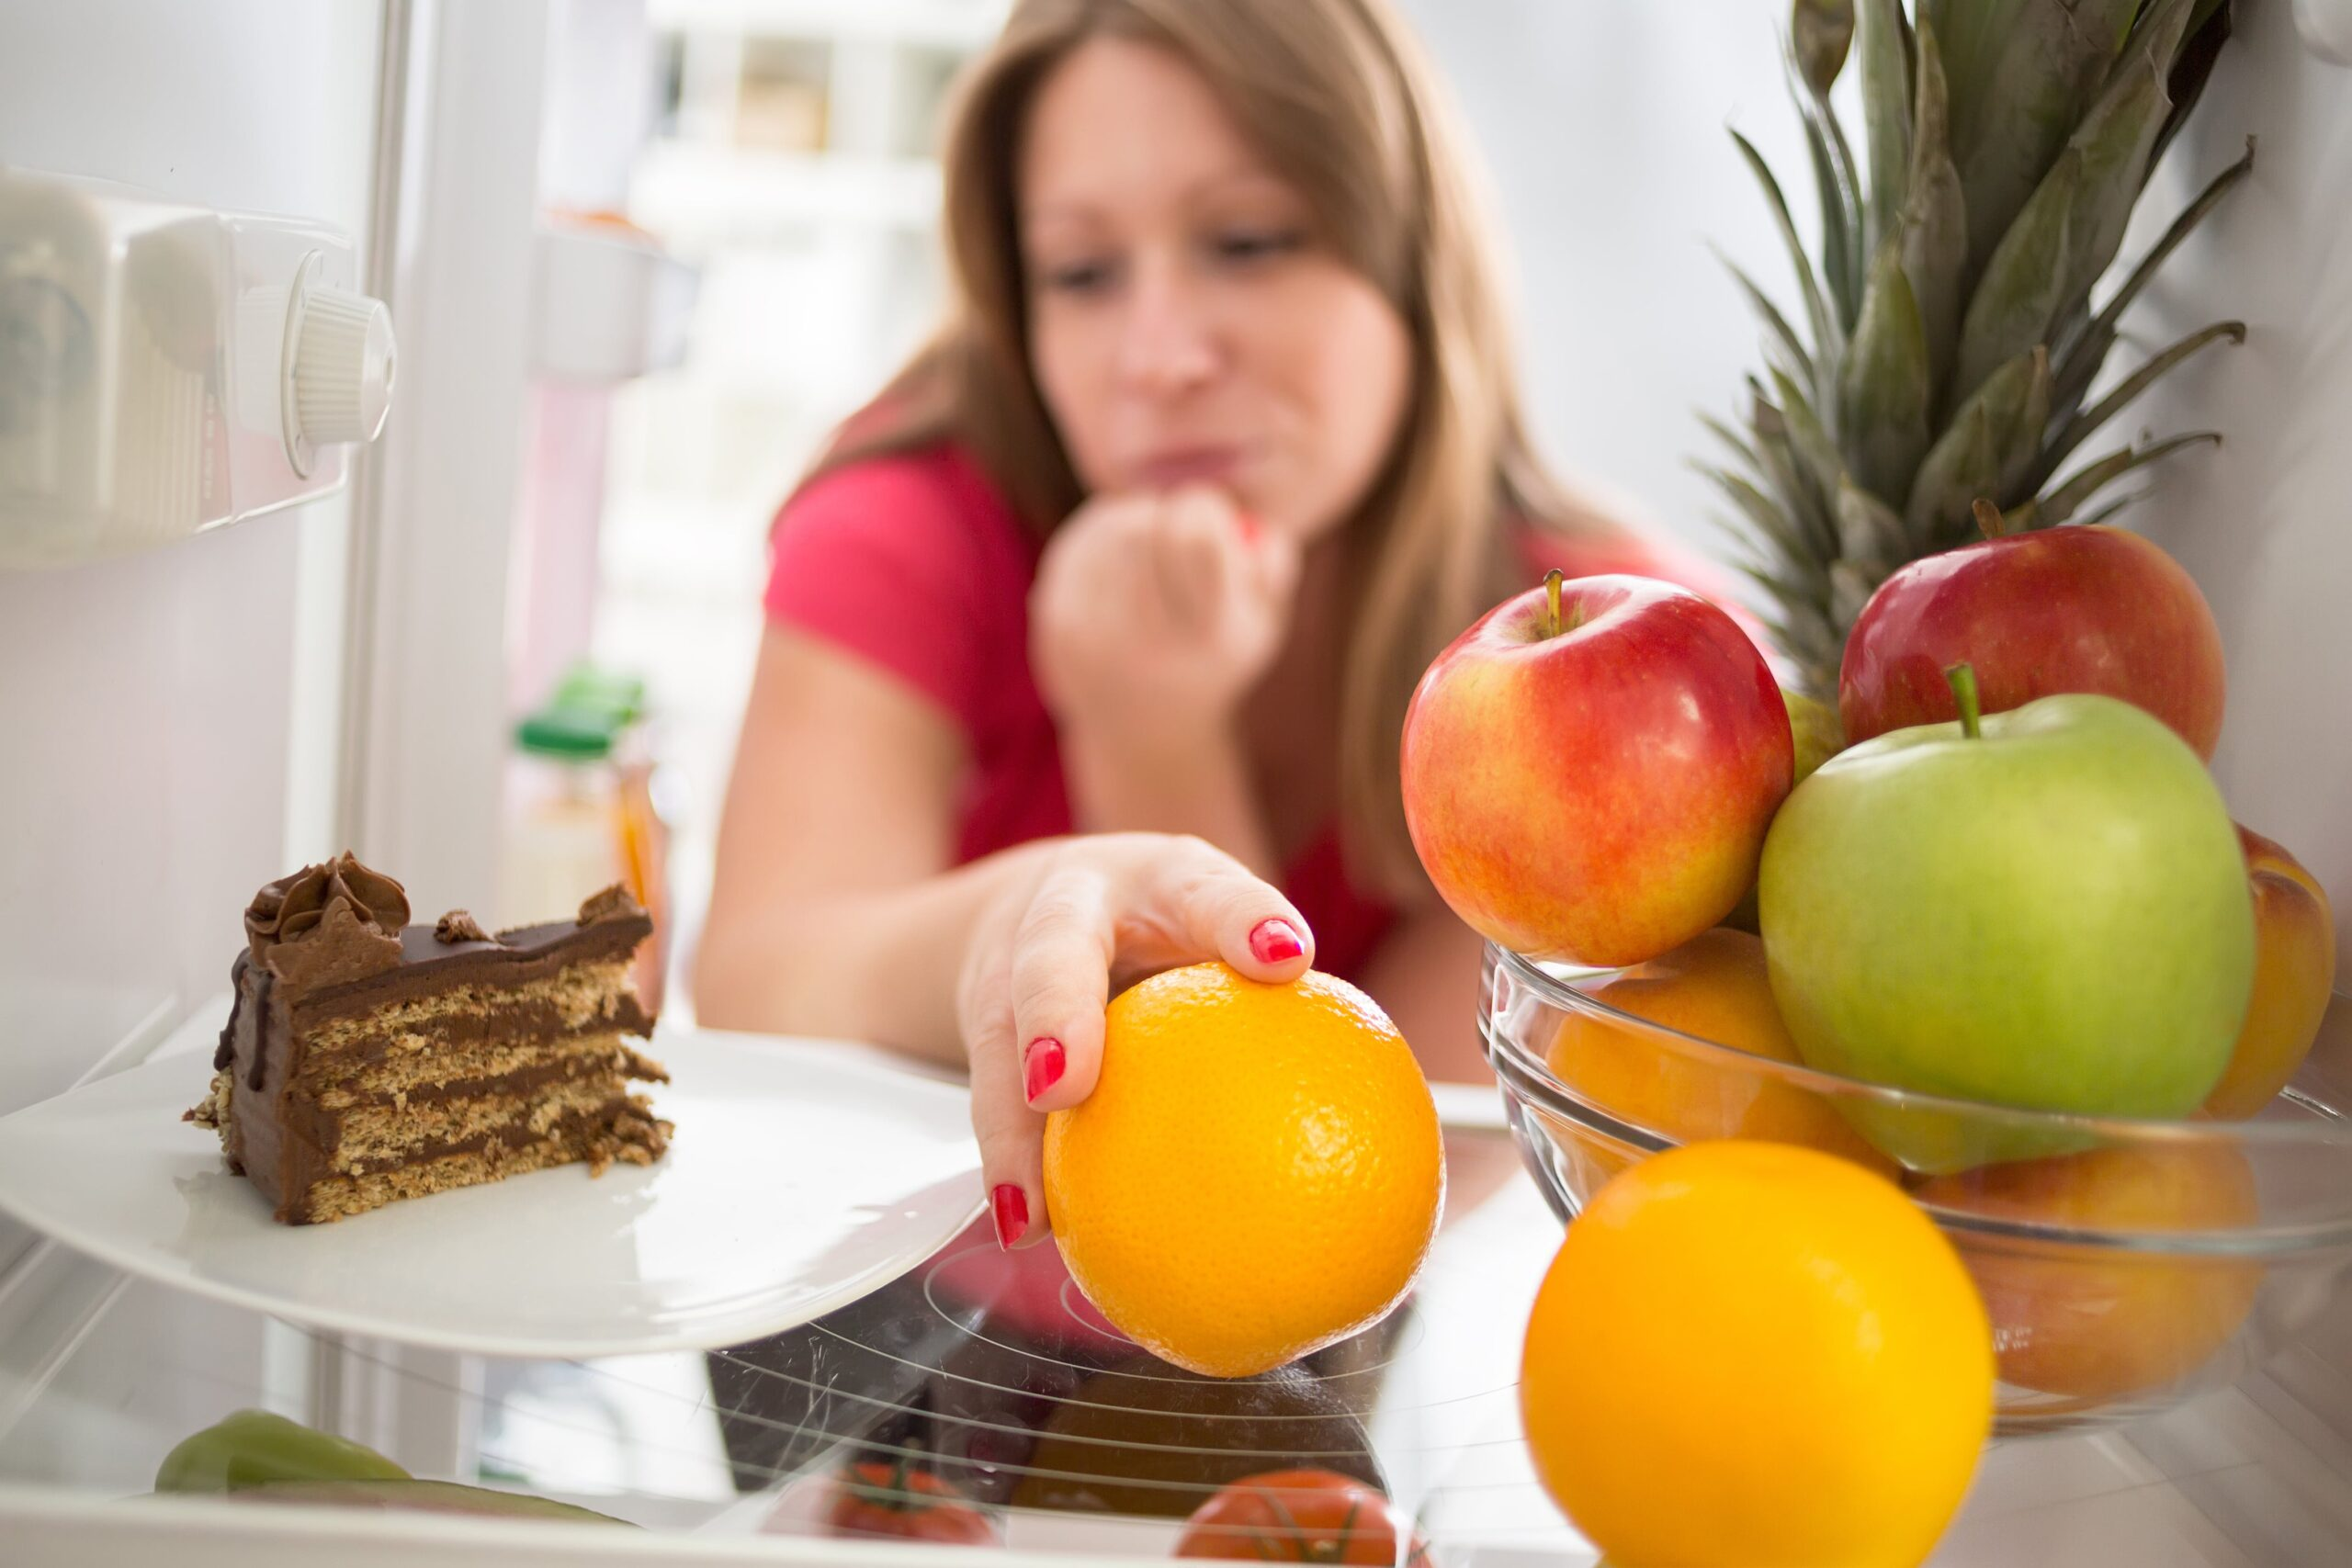 anti diet food rules challenge recovery